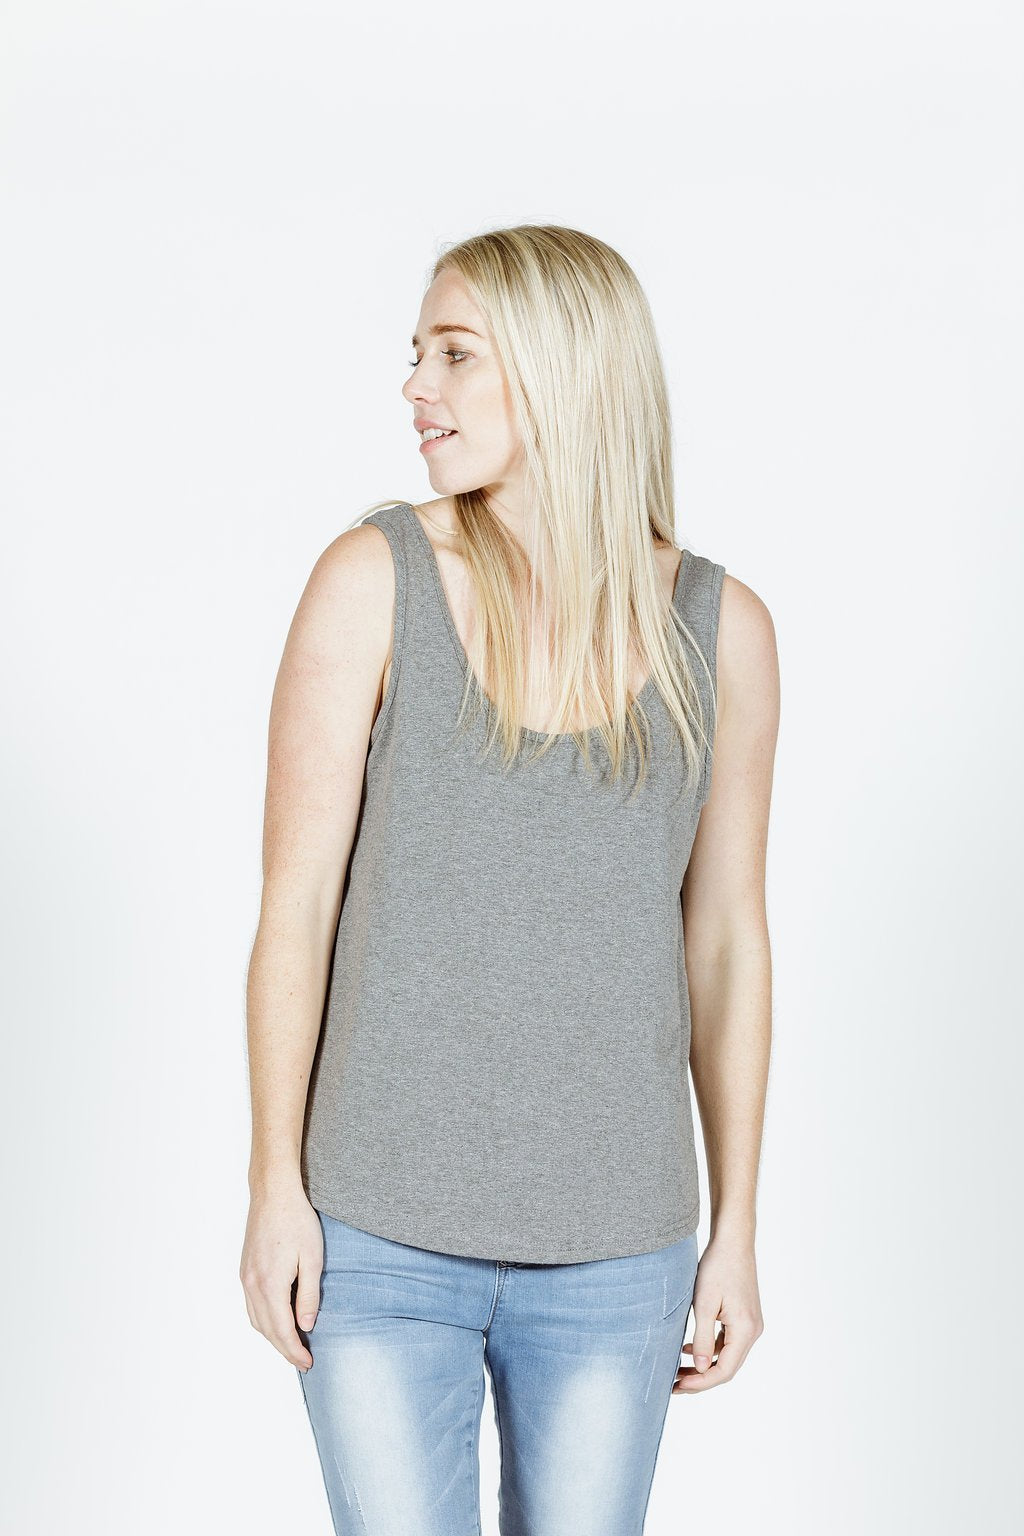 FRANKIE TOP - Charcoal